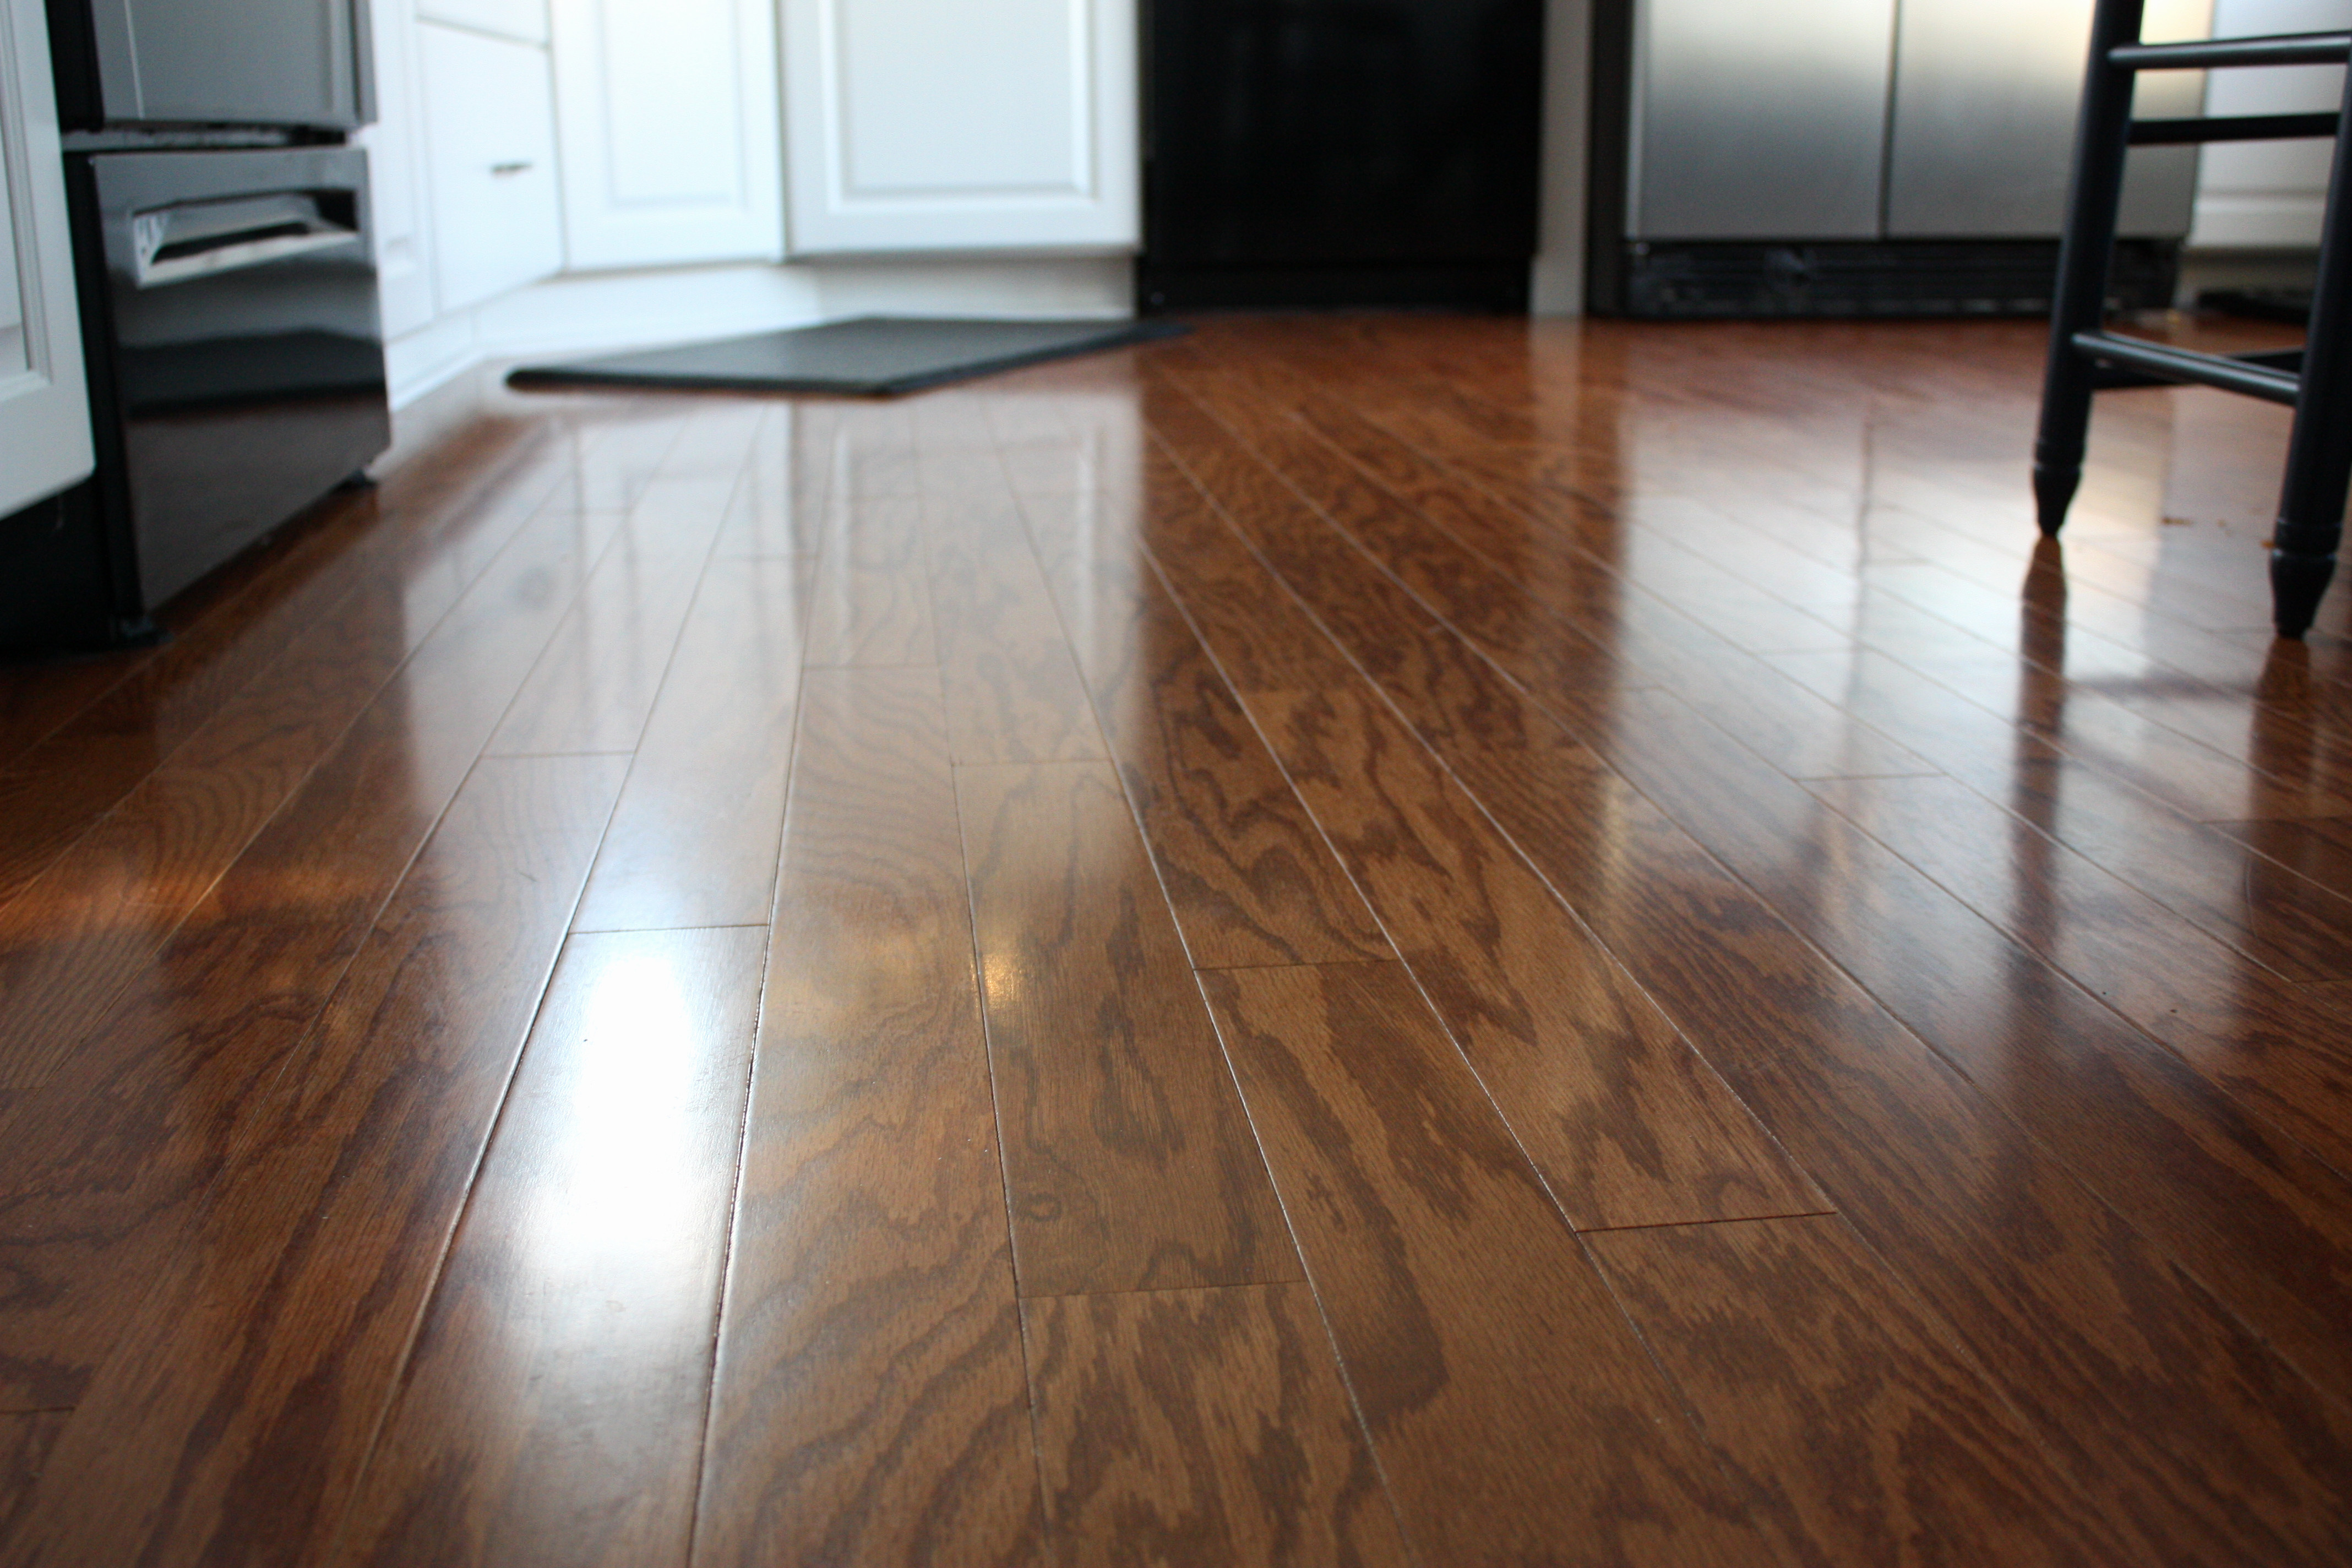 6 engineered hardwood flooring of the wood maker page 6 wood wallpaper intended for floor floorod cleaning hardwood carpet lake forest il rare image ideas of wood floor steam cleaner